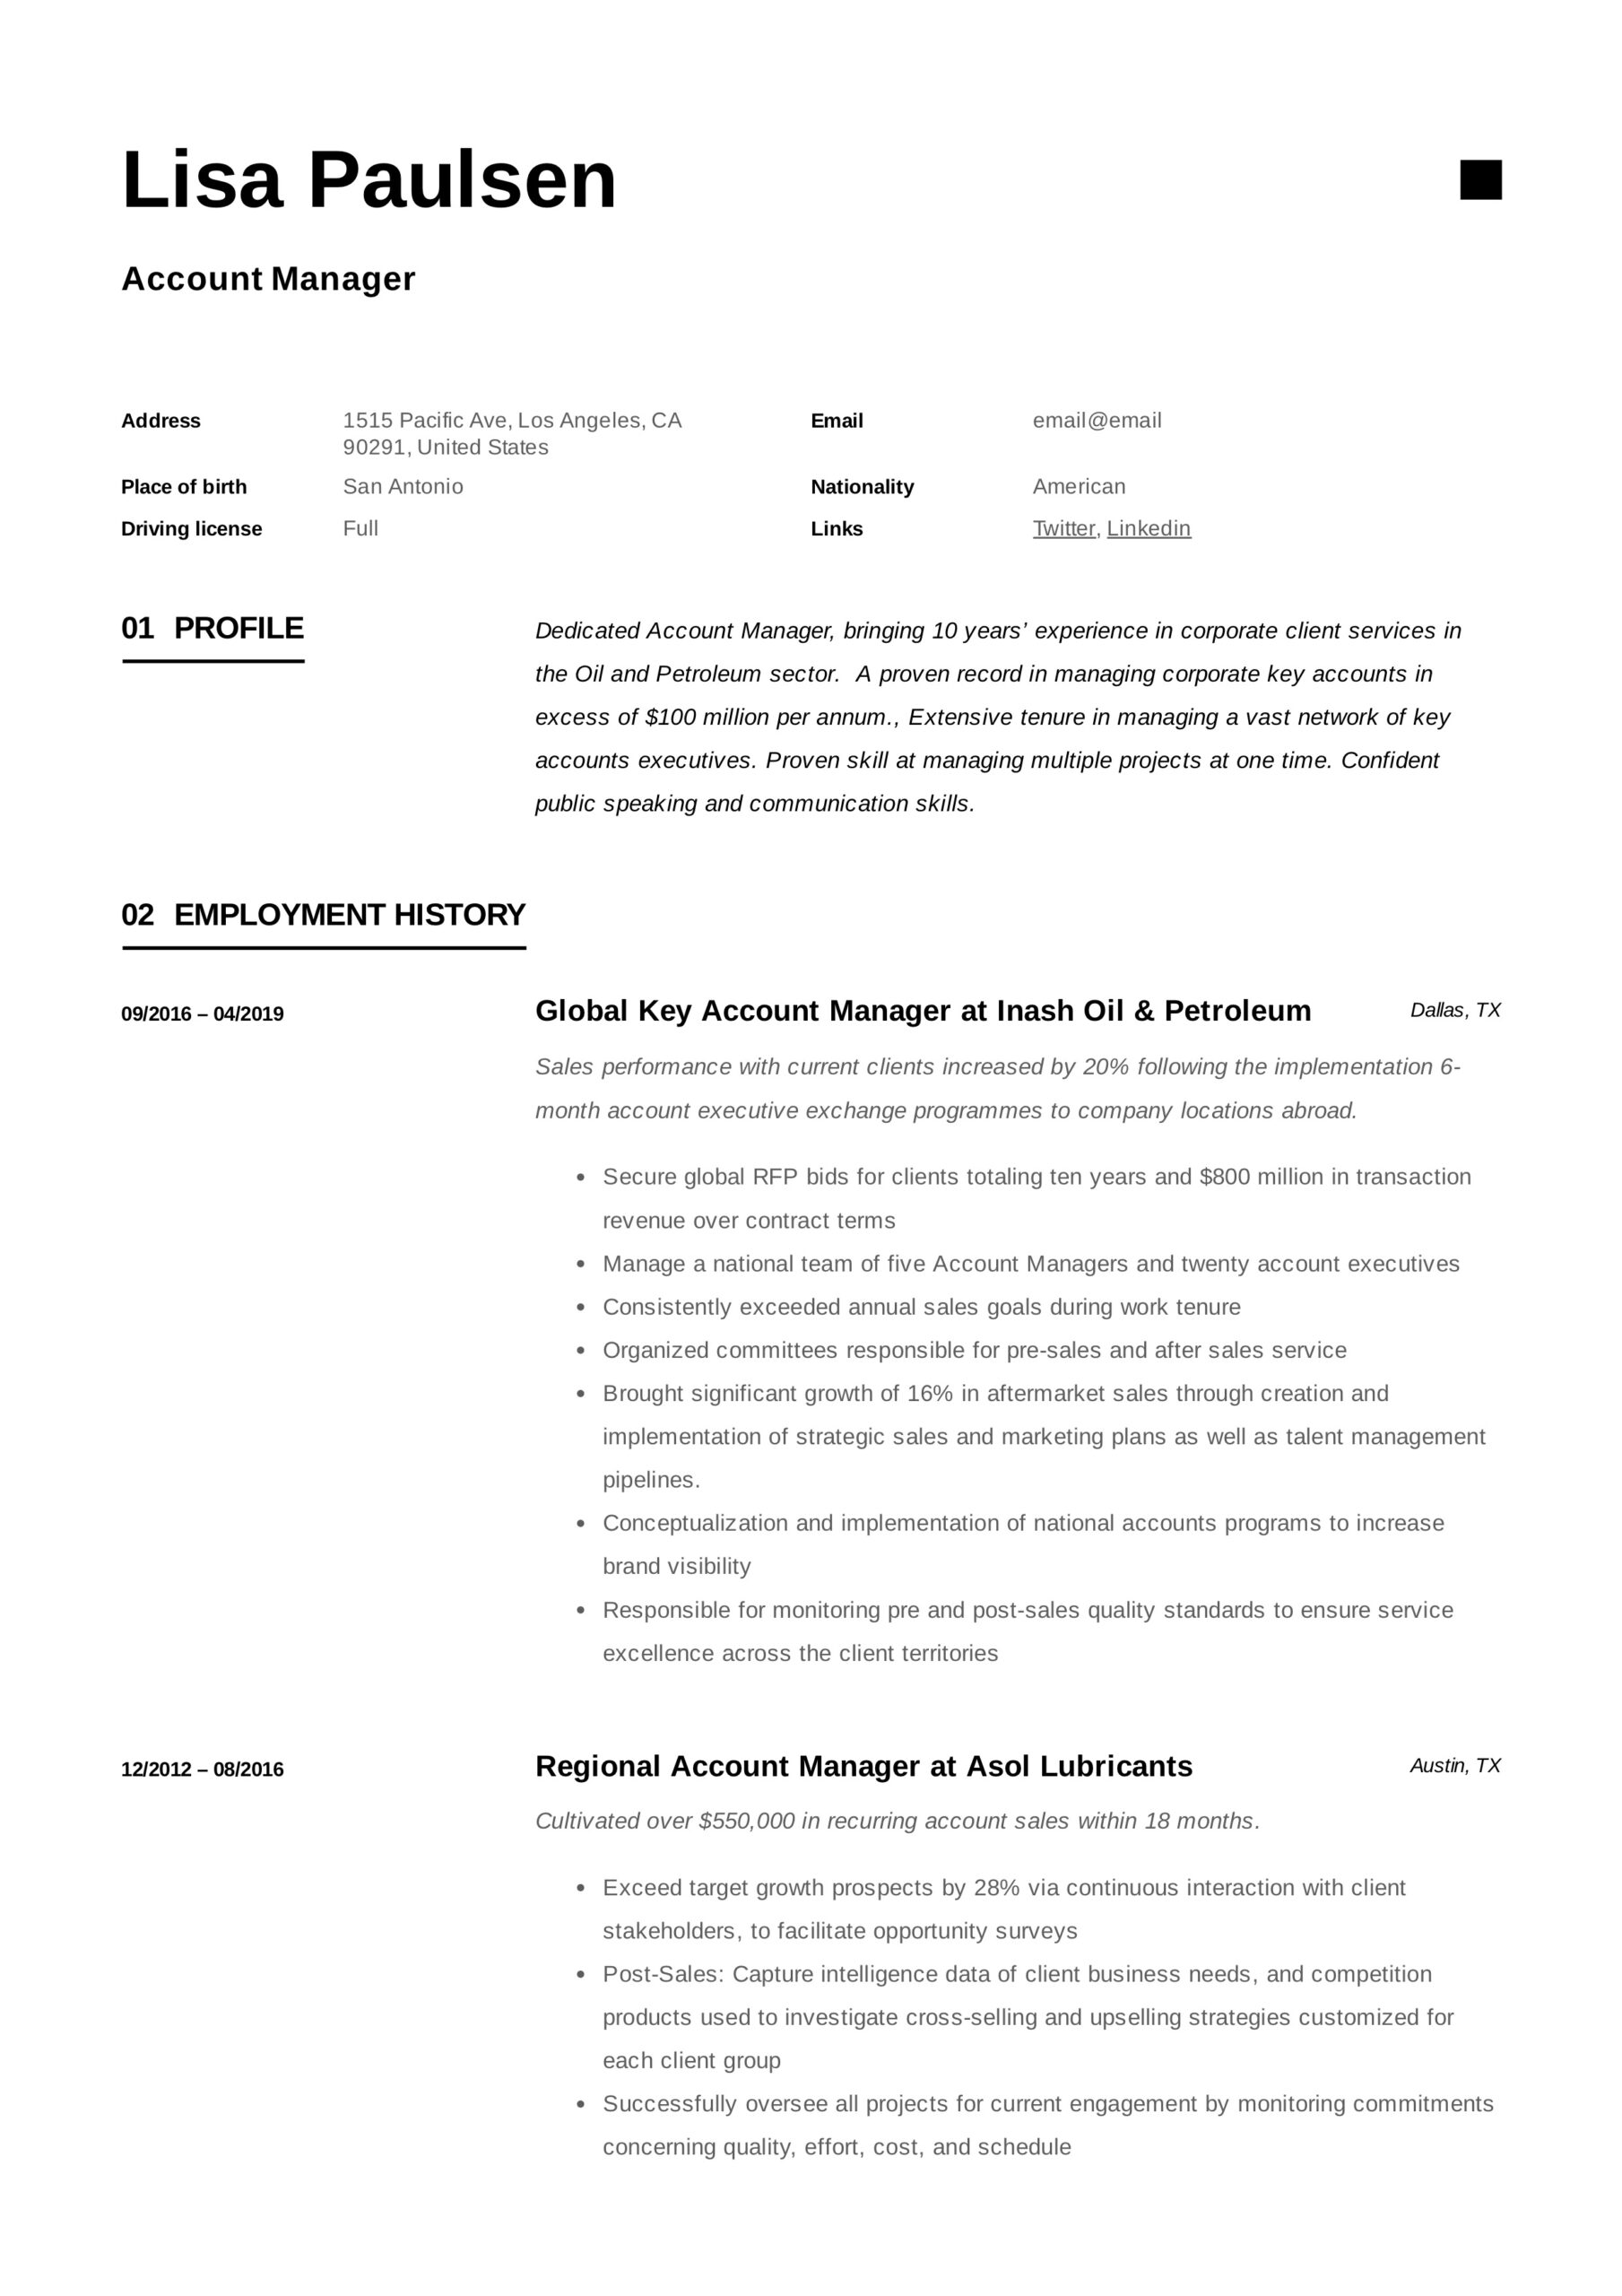 account manager resume writing guide examples best for lisa paulsen implement synonym job Resume Best Resume For Account Manager